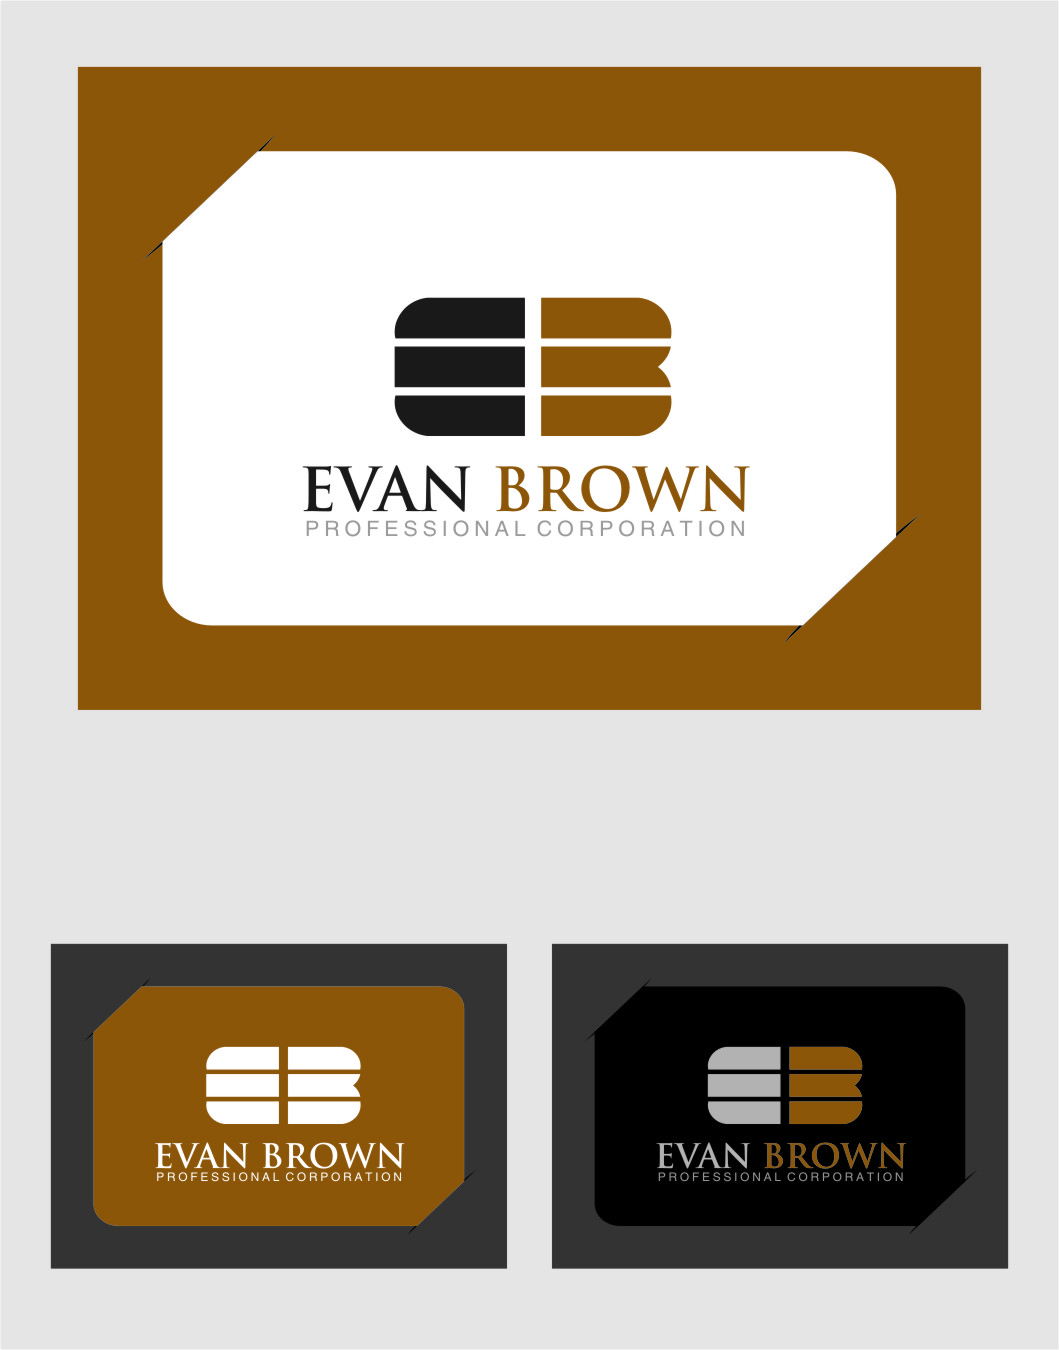 Logo Design by Ngepet_art - Entry No. 161 in the Logo Design Contest Inspiring Logo Design for Evan Brown Professional Corporation.